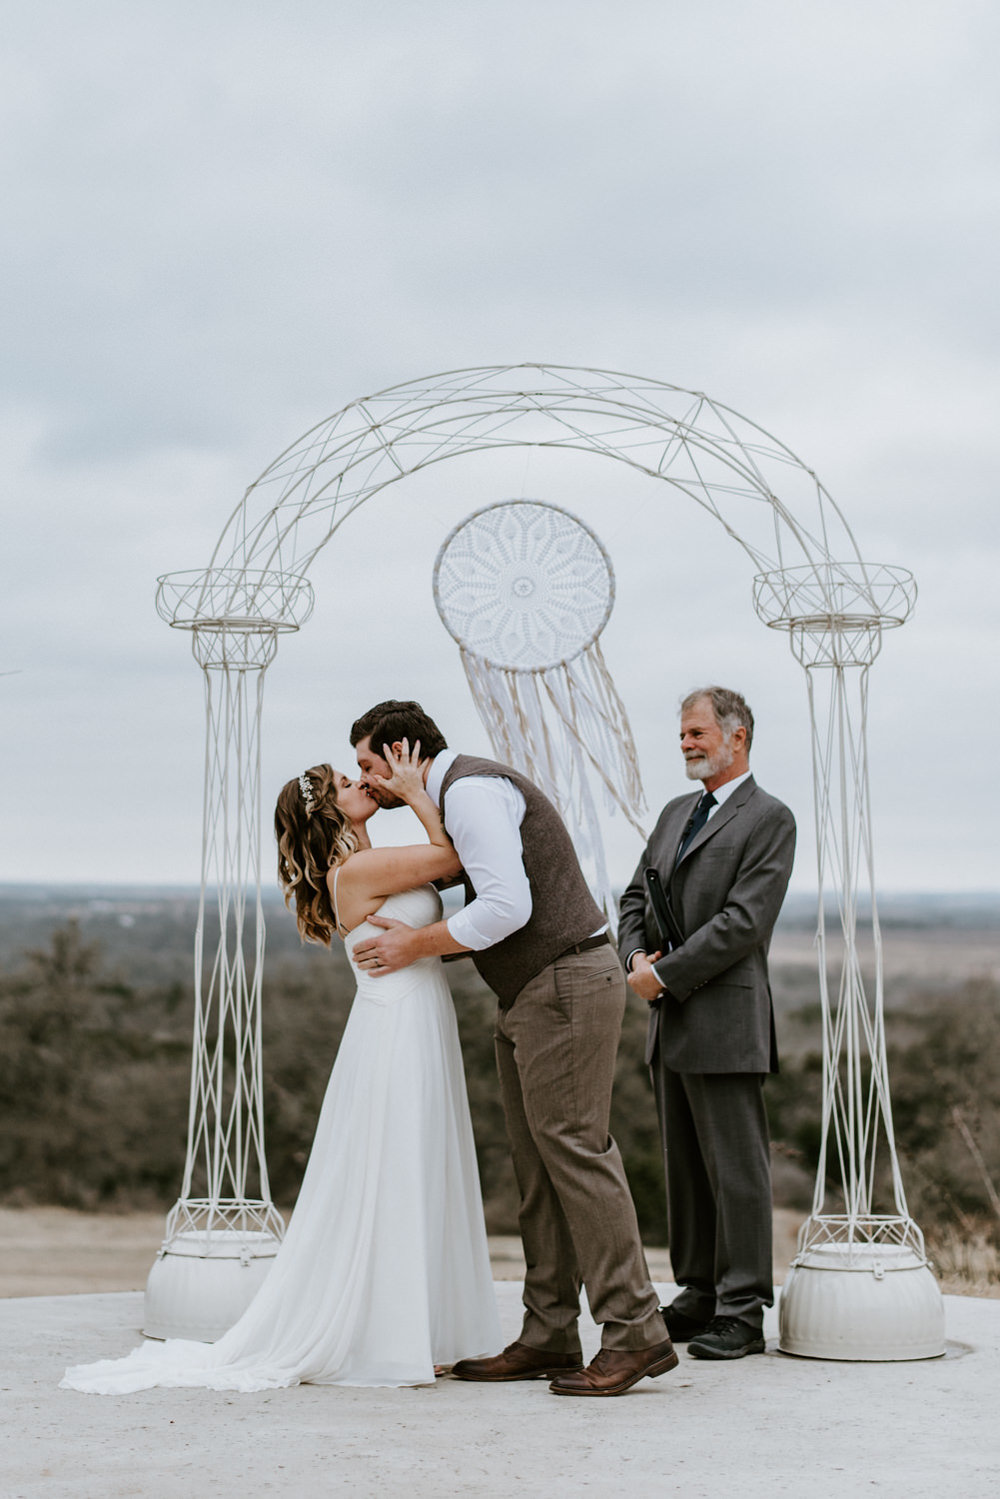 Dreamcatcher wedding decorations at altar